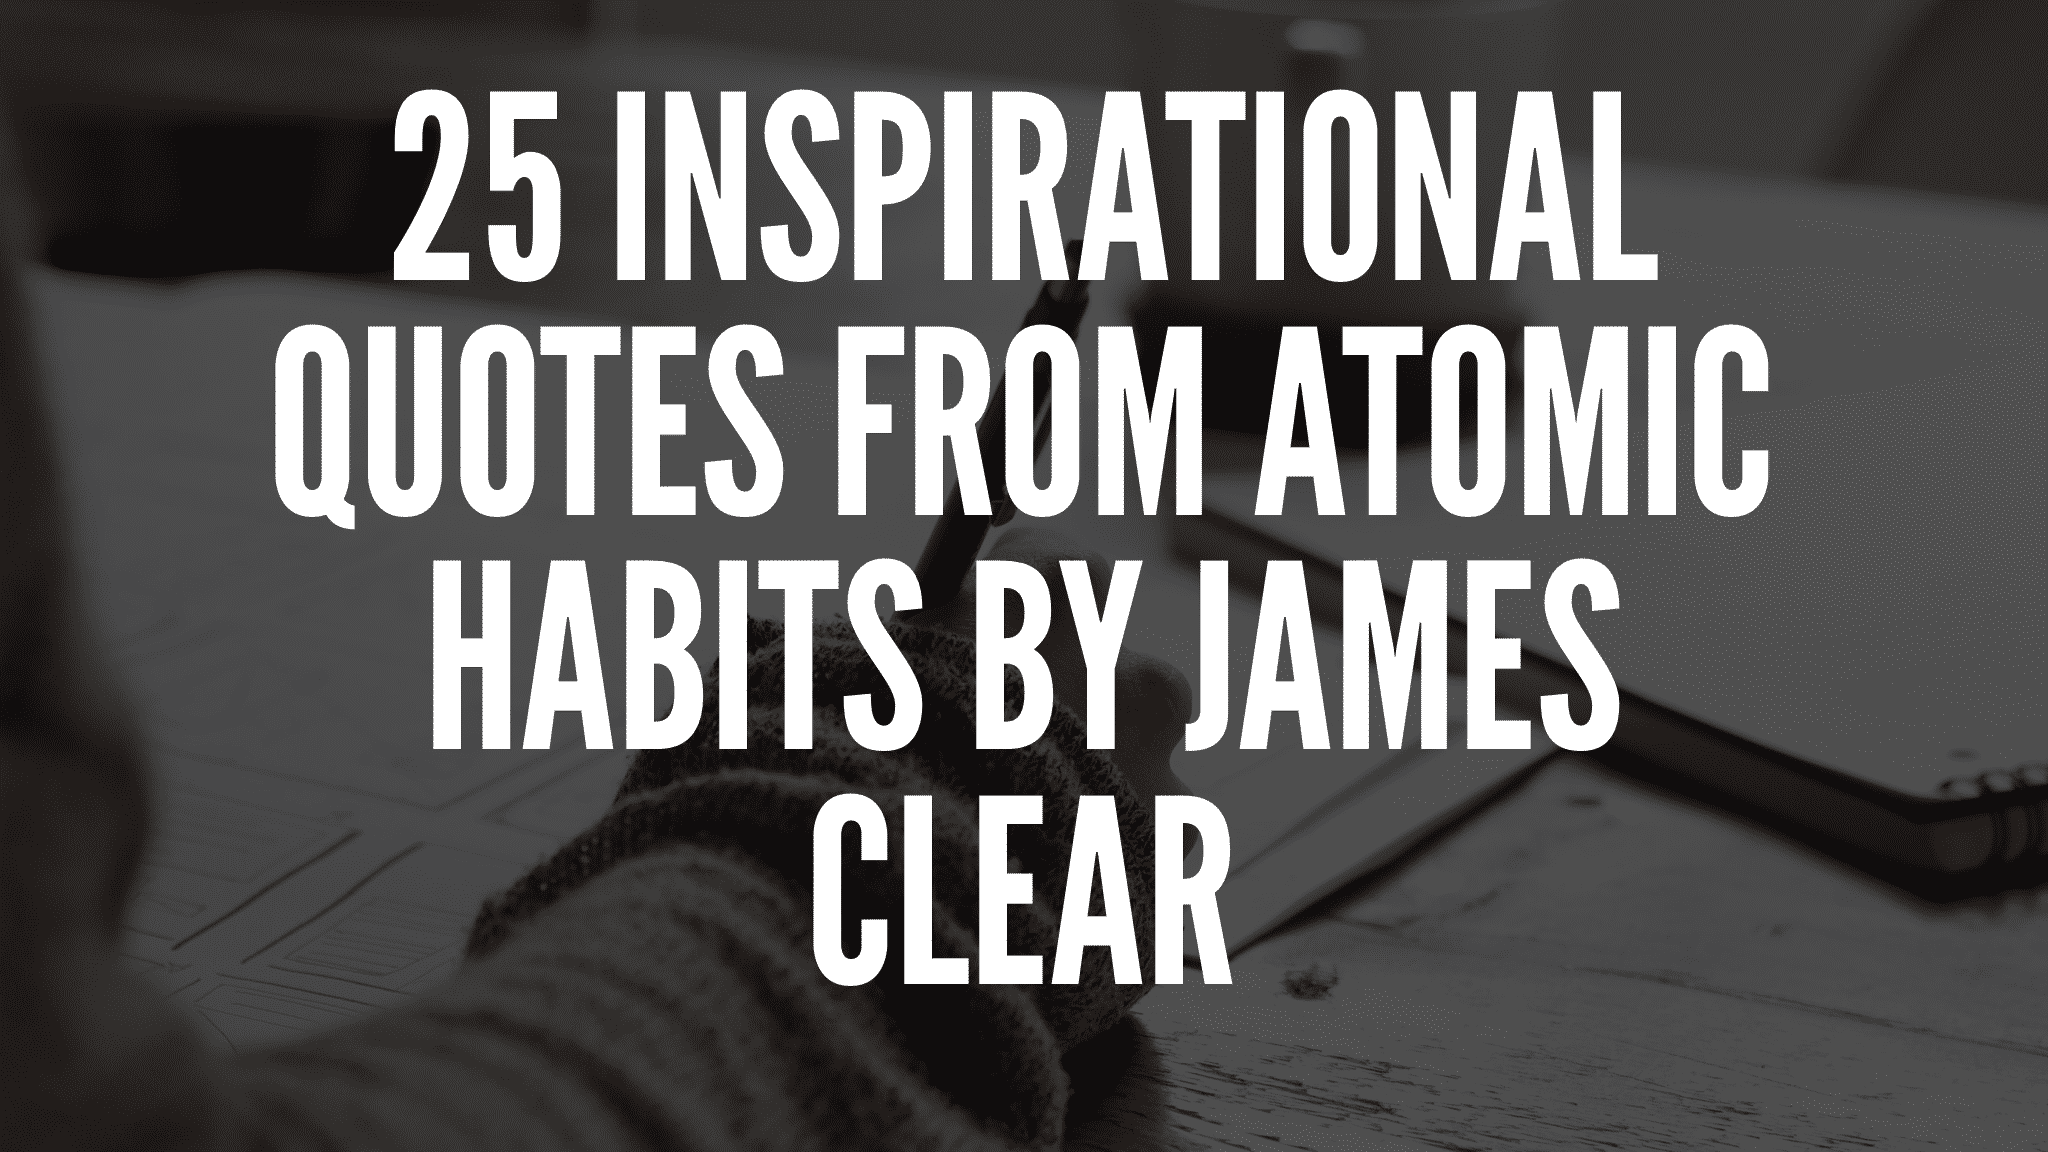 25 Inspirational Quotes From Atomic Habits By James Clear